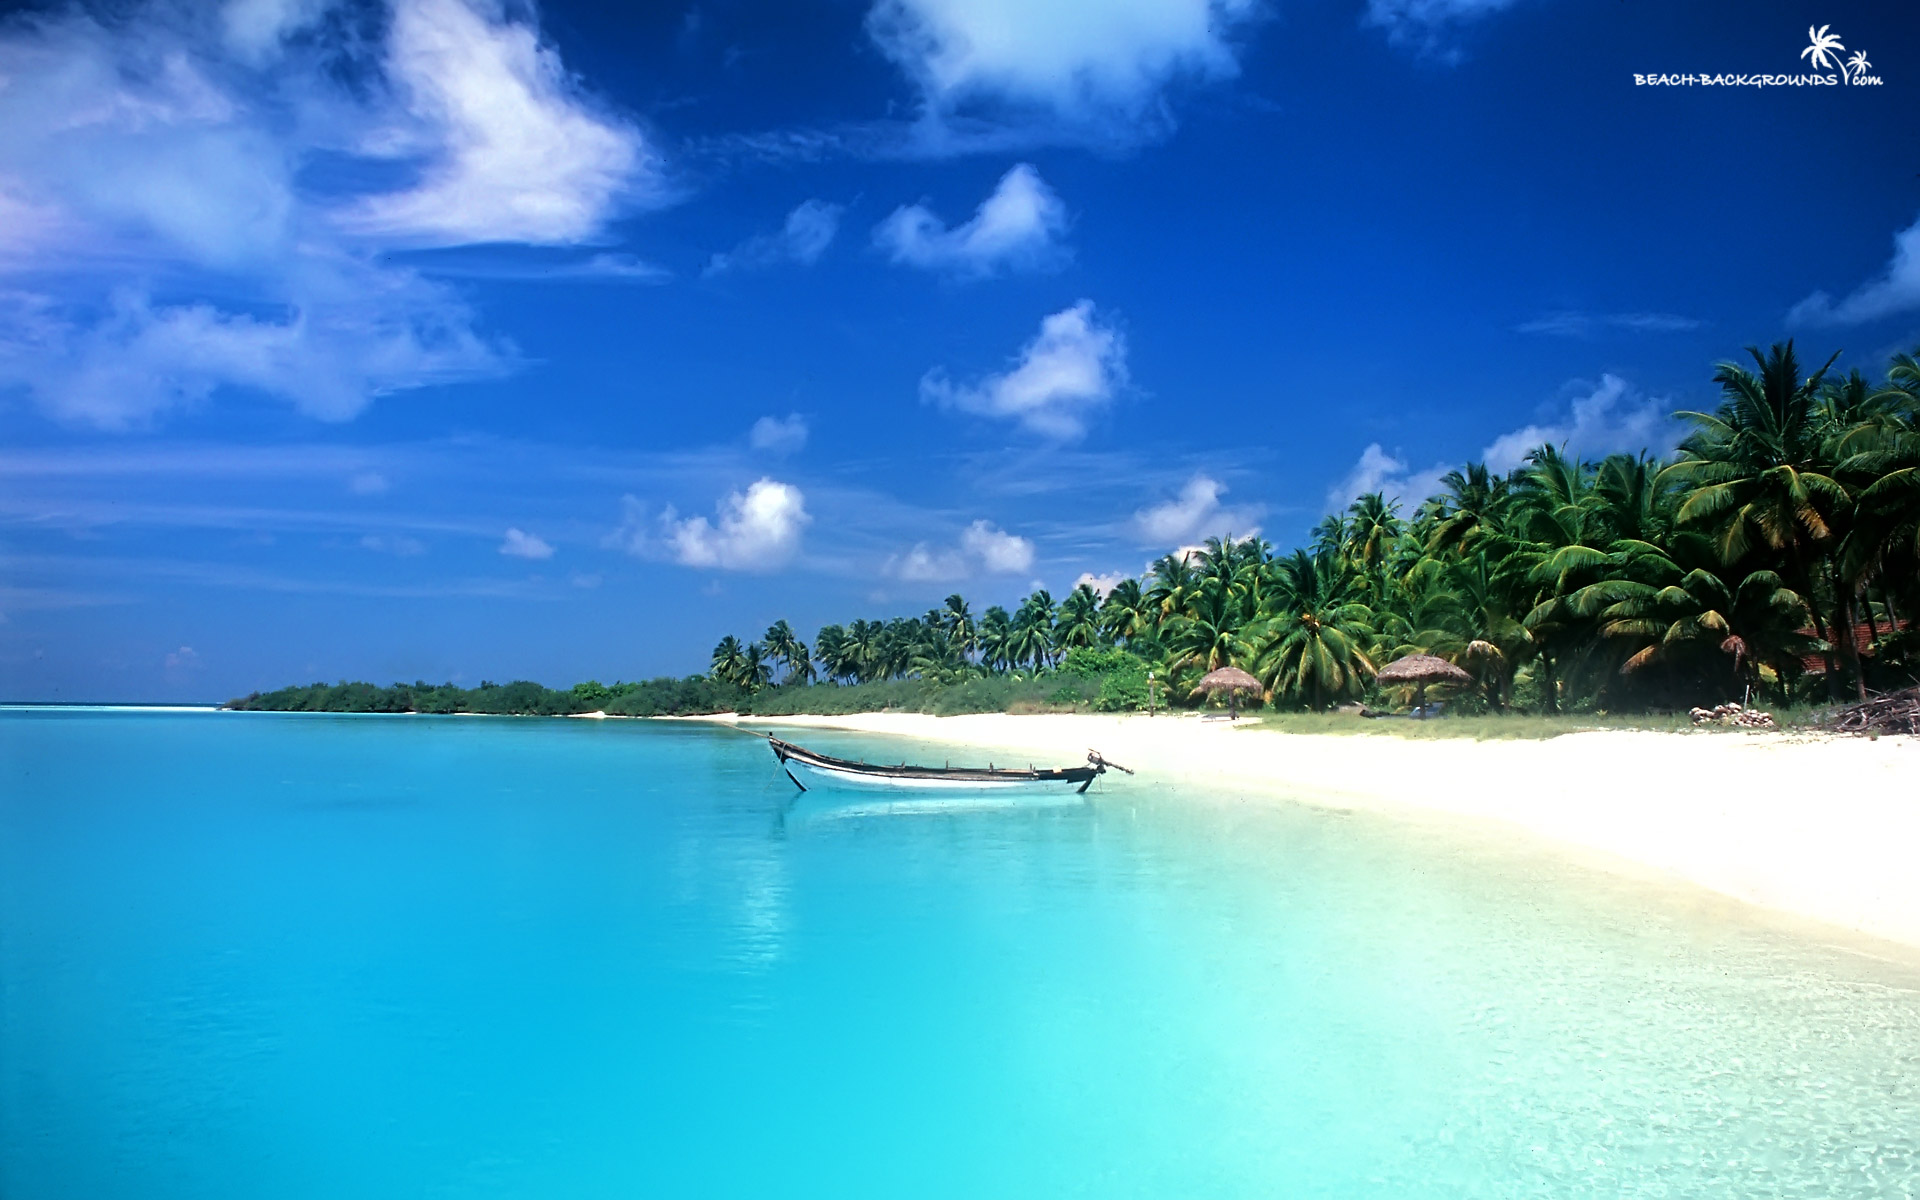 Beach Wallpaper Image Picture HD